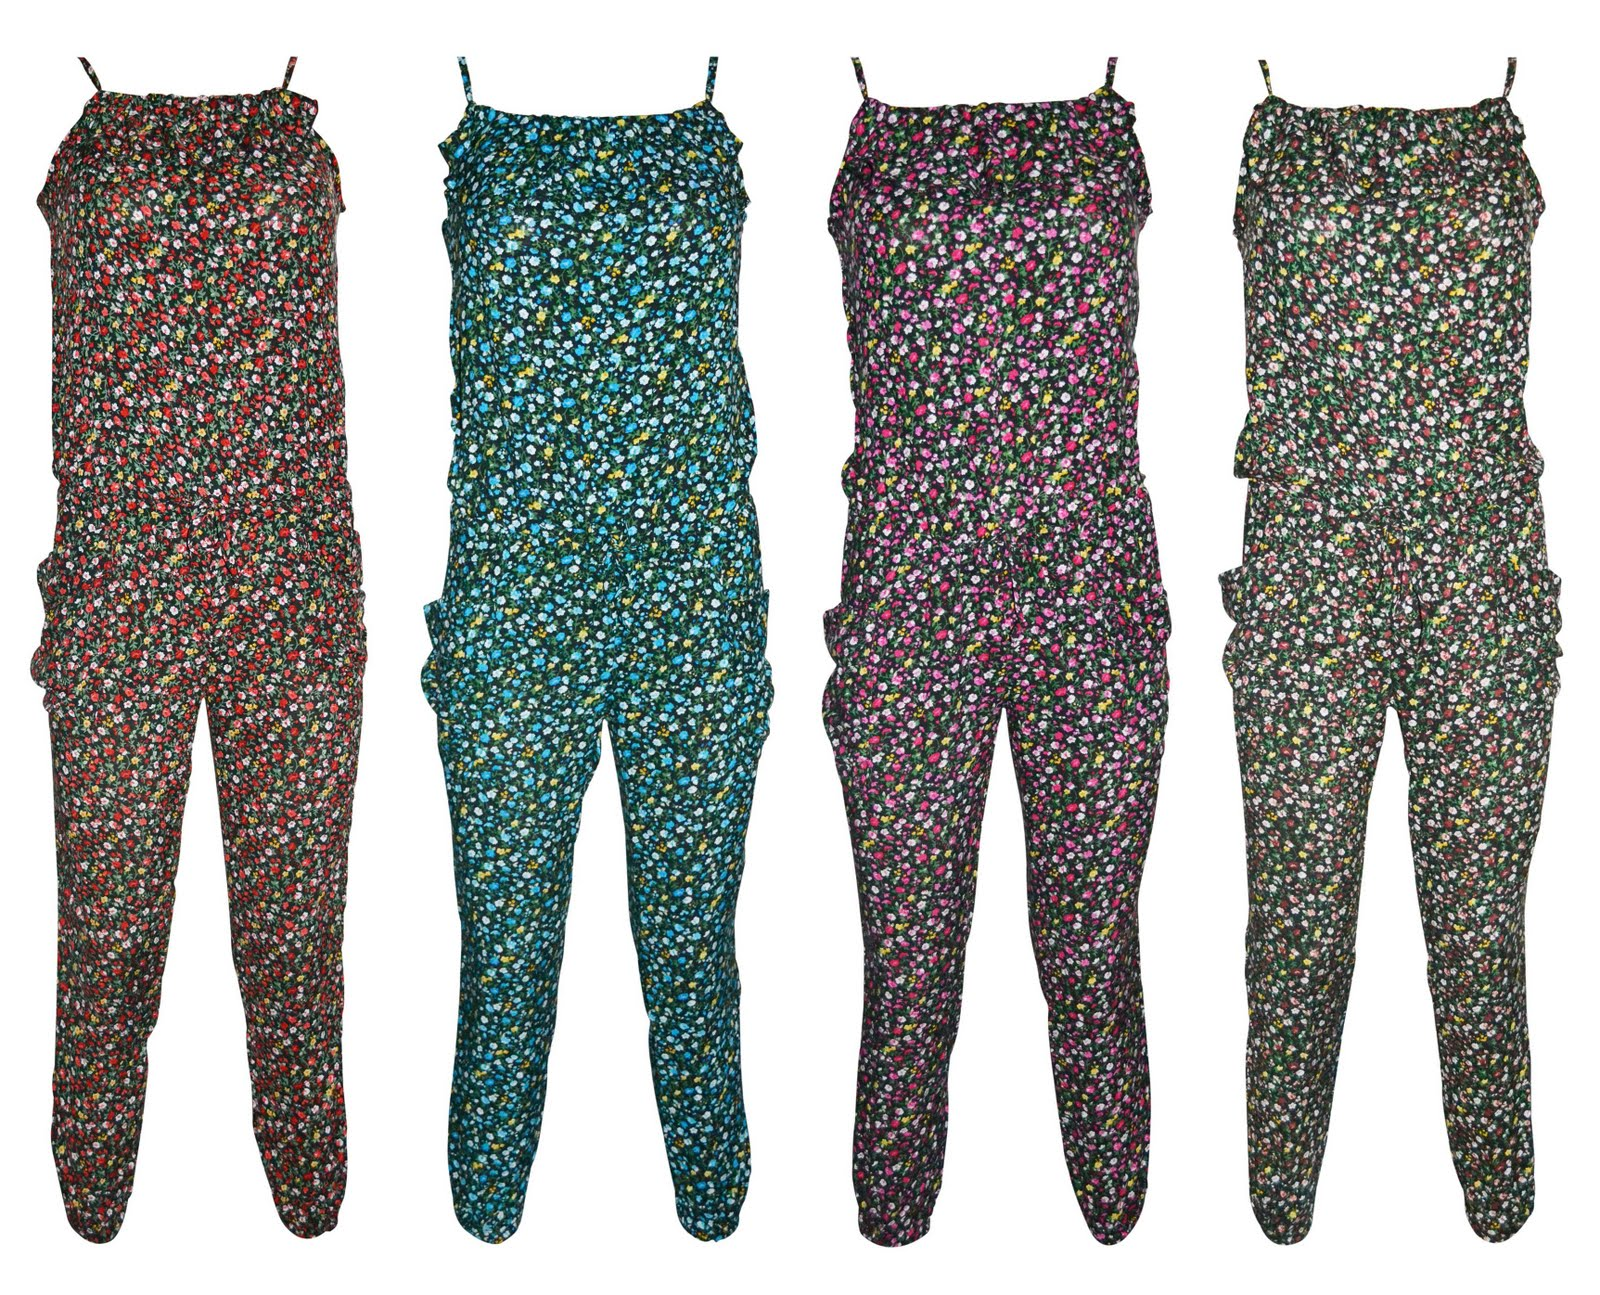 7fa9f0f8813e Women s Playsuit Ditsy Flower Ladies Jumpsuit Trouser - Women s ditsy  flower print playsuit available in a 4 amazing summer colours - green